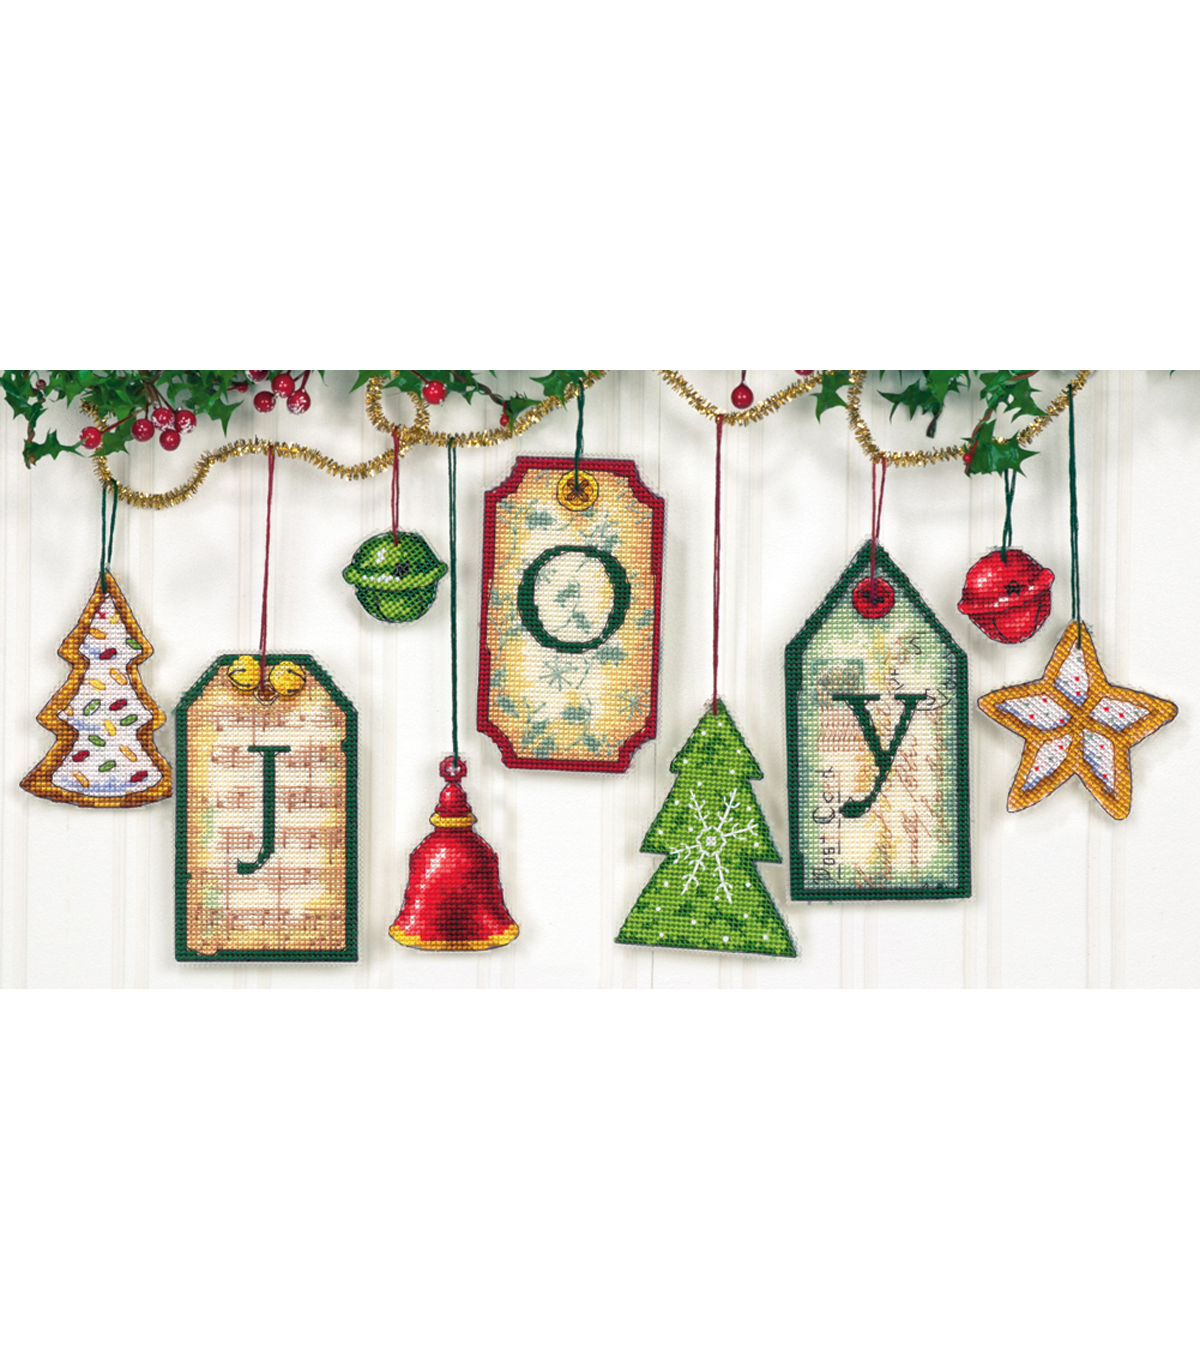 Joy Tag Ornaments Counted Cross Stitch Kit-5\u0022 High Set Of 9